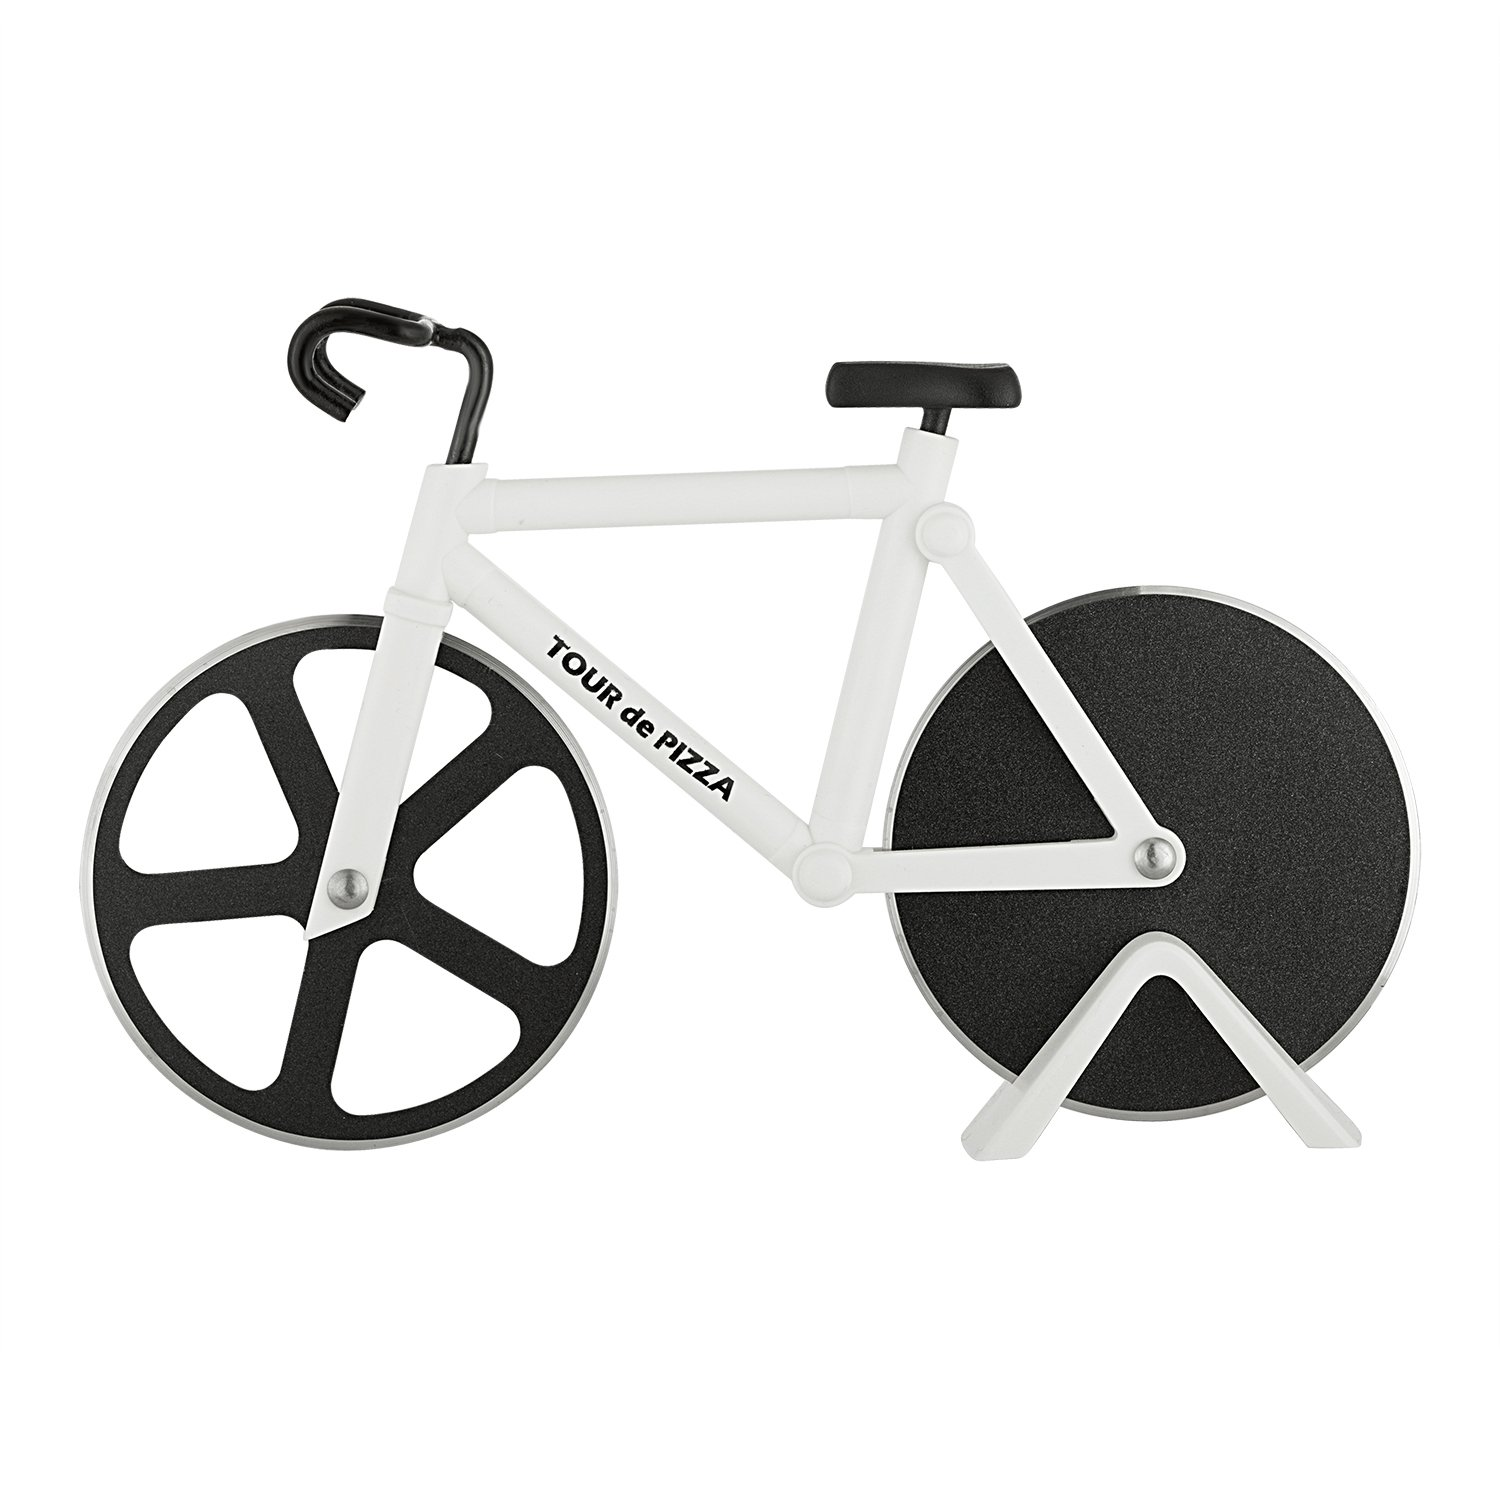 Bicycle Pizza Cutter - TOUR de PIZZA - Dual Stainless Steel Non-Stick Cutting Wheels - Display Stand - A very Cool Gift for the Kitchen by SoHo Kitchen COMINHKPR113429